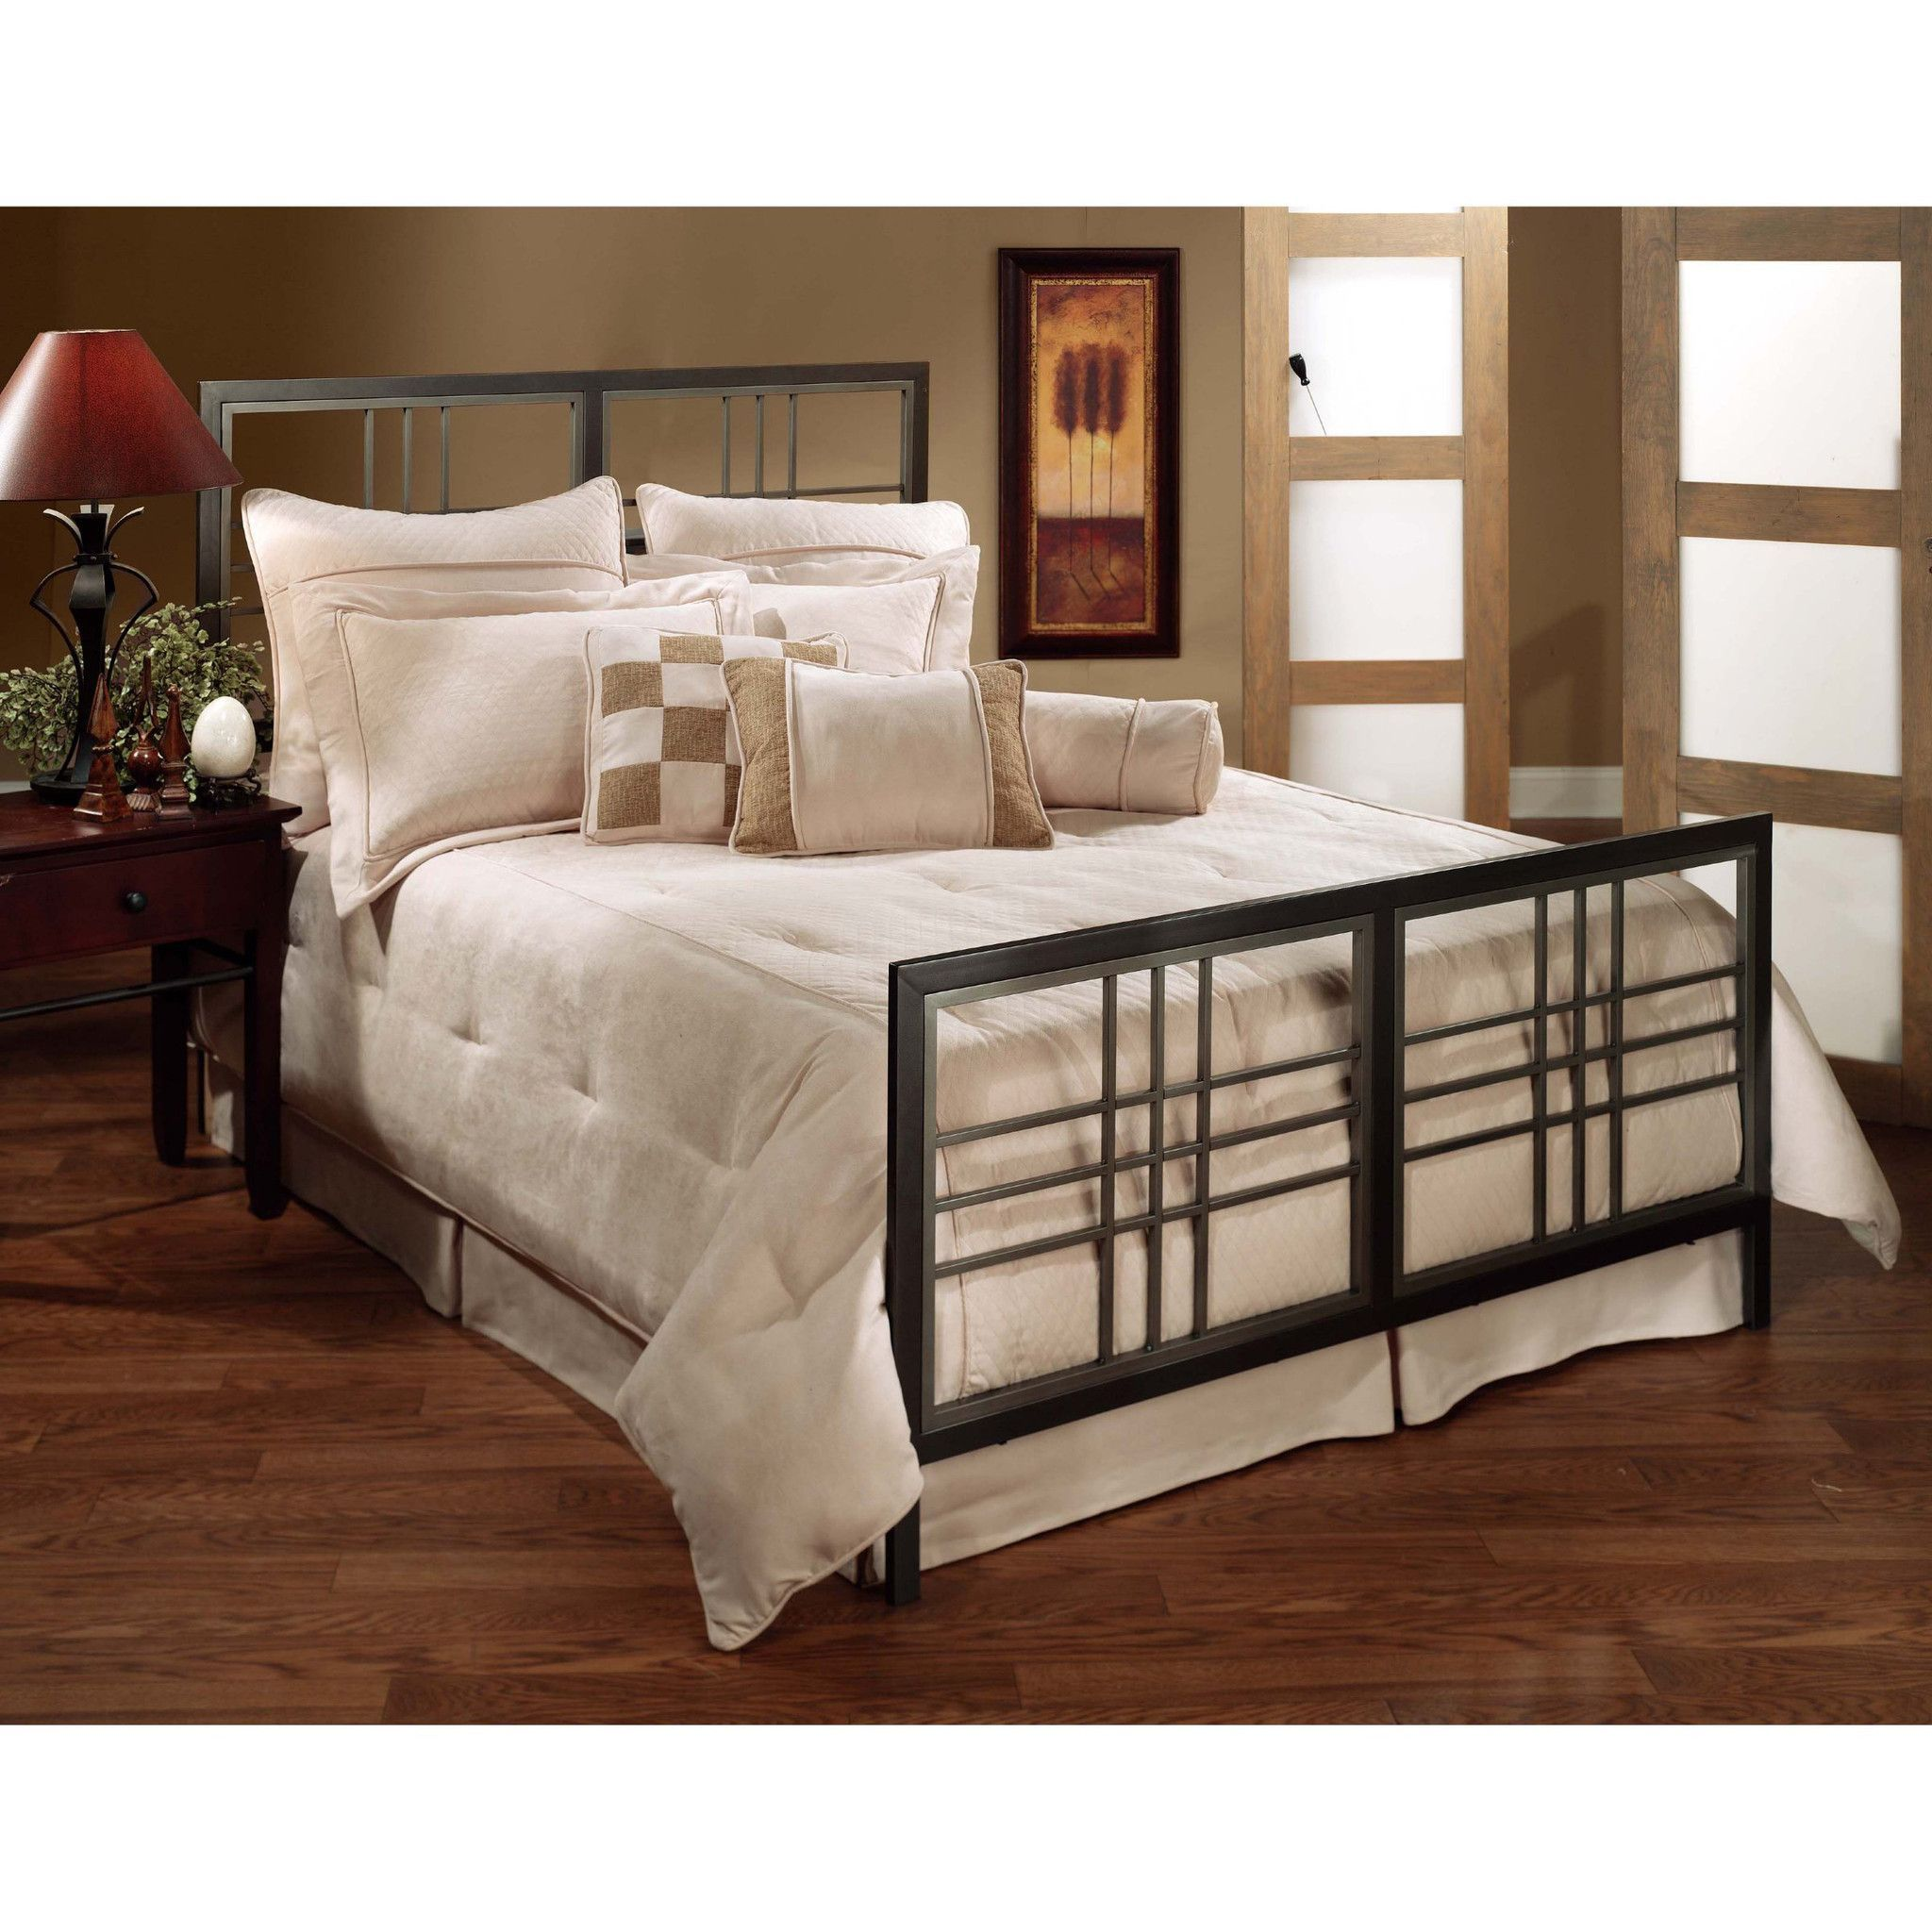 contemporary metal tiburon bed metal bed ideas pinterest